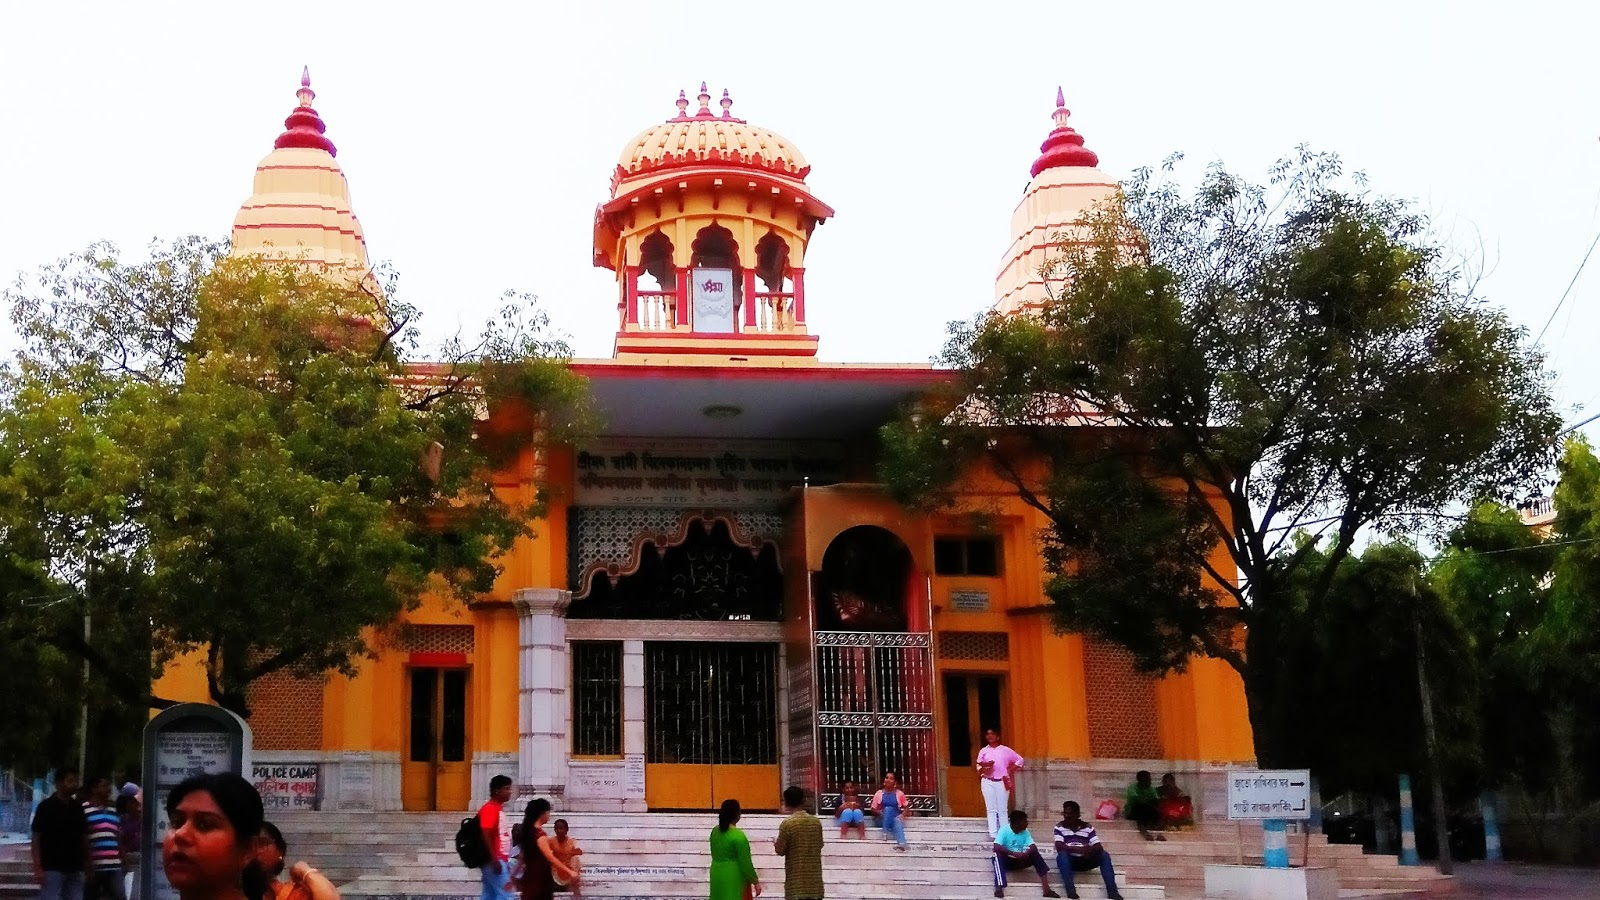 Adyapeeth Gate